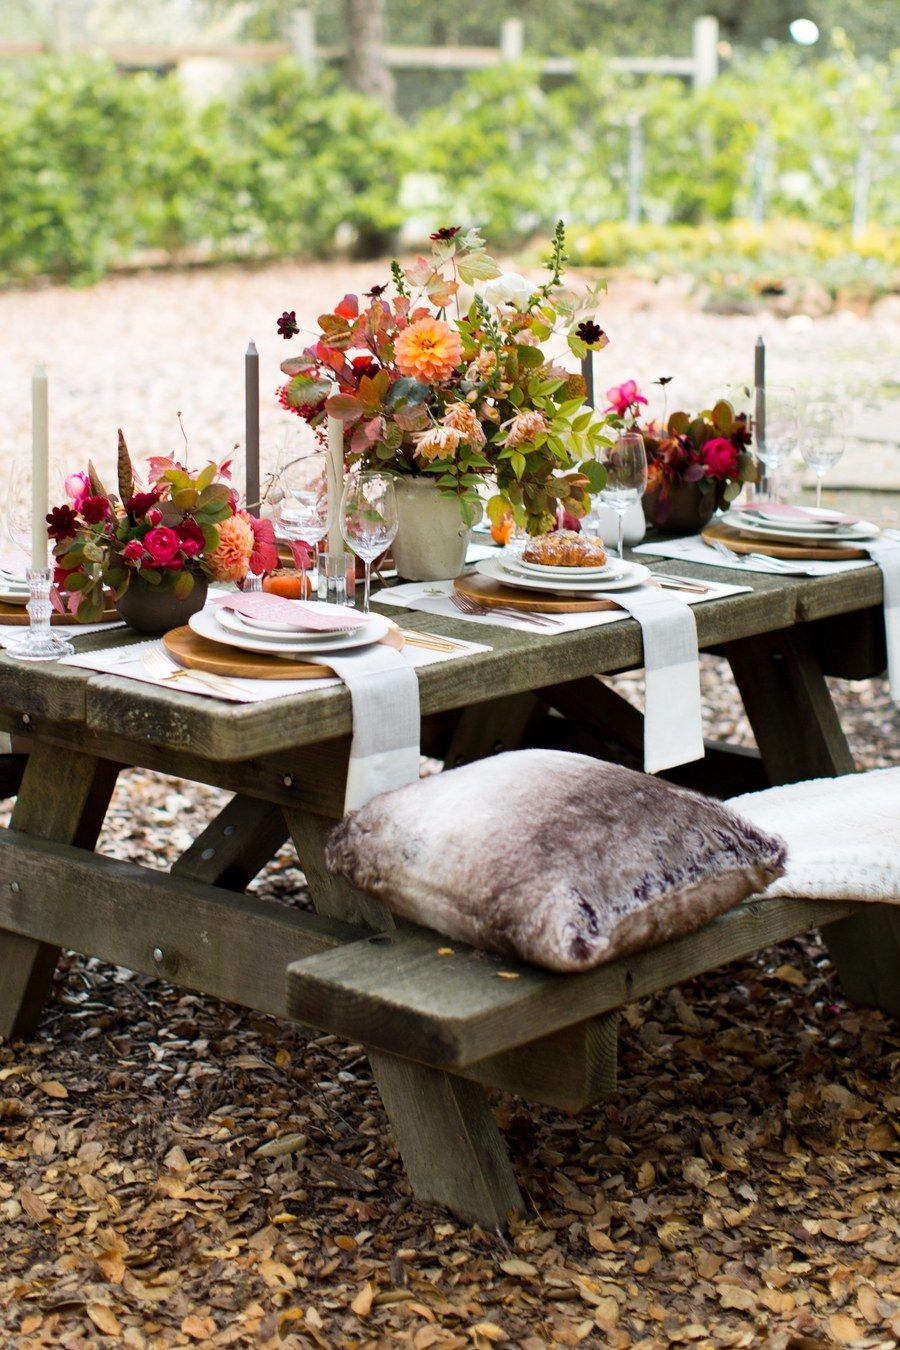 Cozy up at this picnic table with